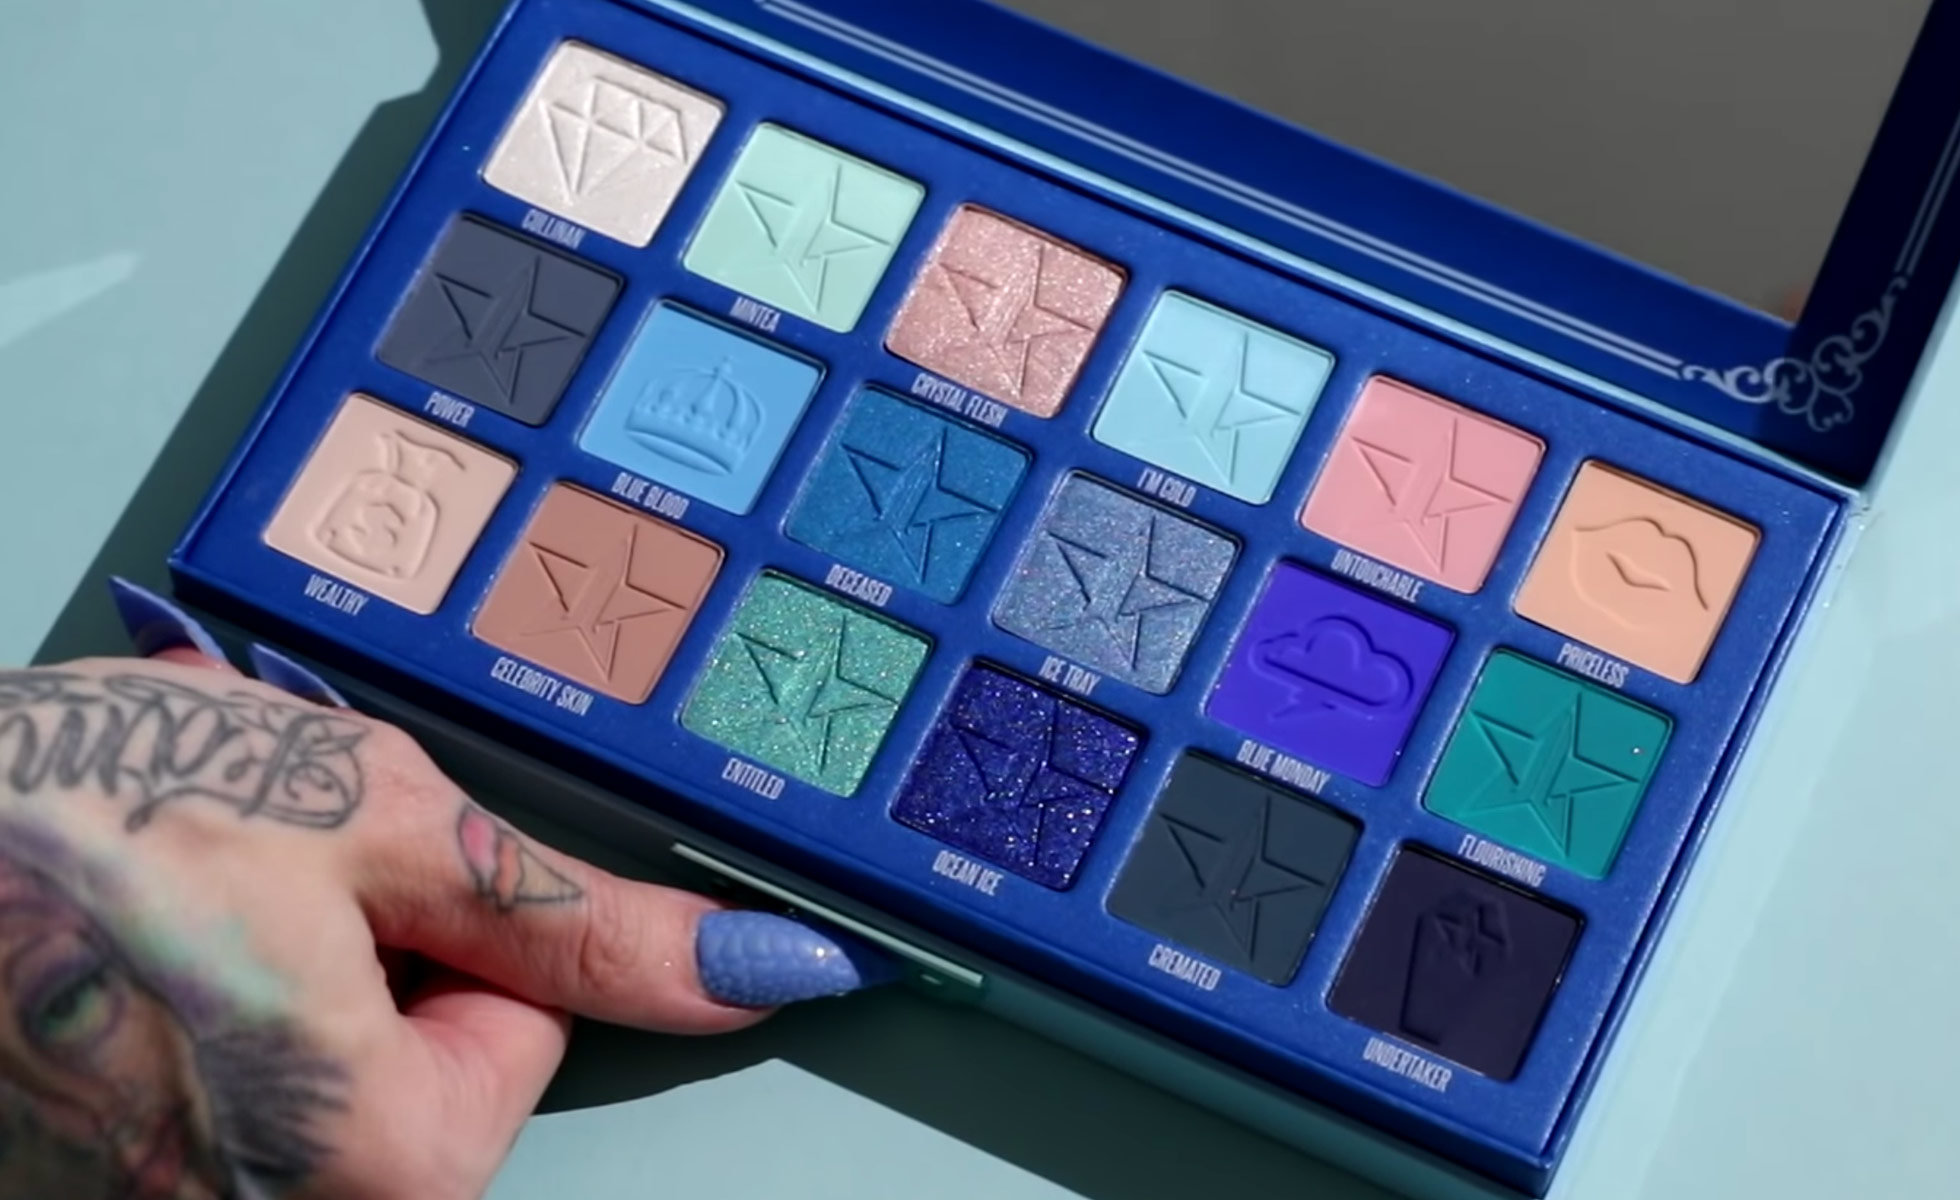 It wouldn't be a true Jeffree Star launch without a new eye shadow palette! This drop features Jeffree's 6th eye shadow palette, which includes 18 pans of ...